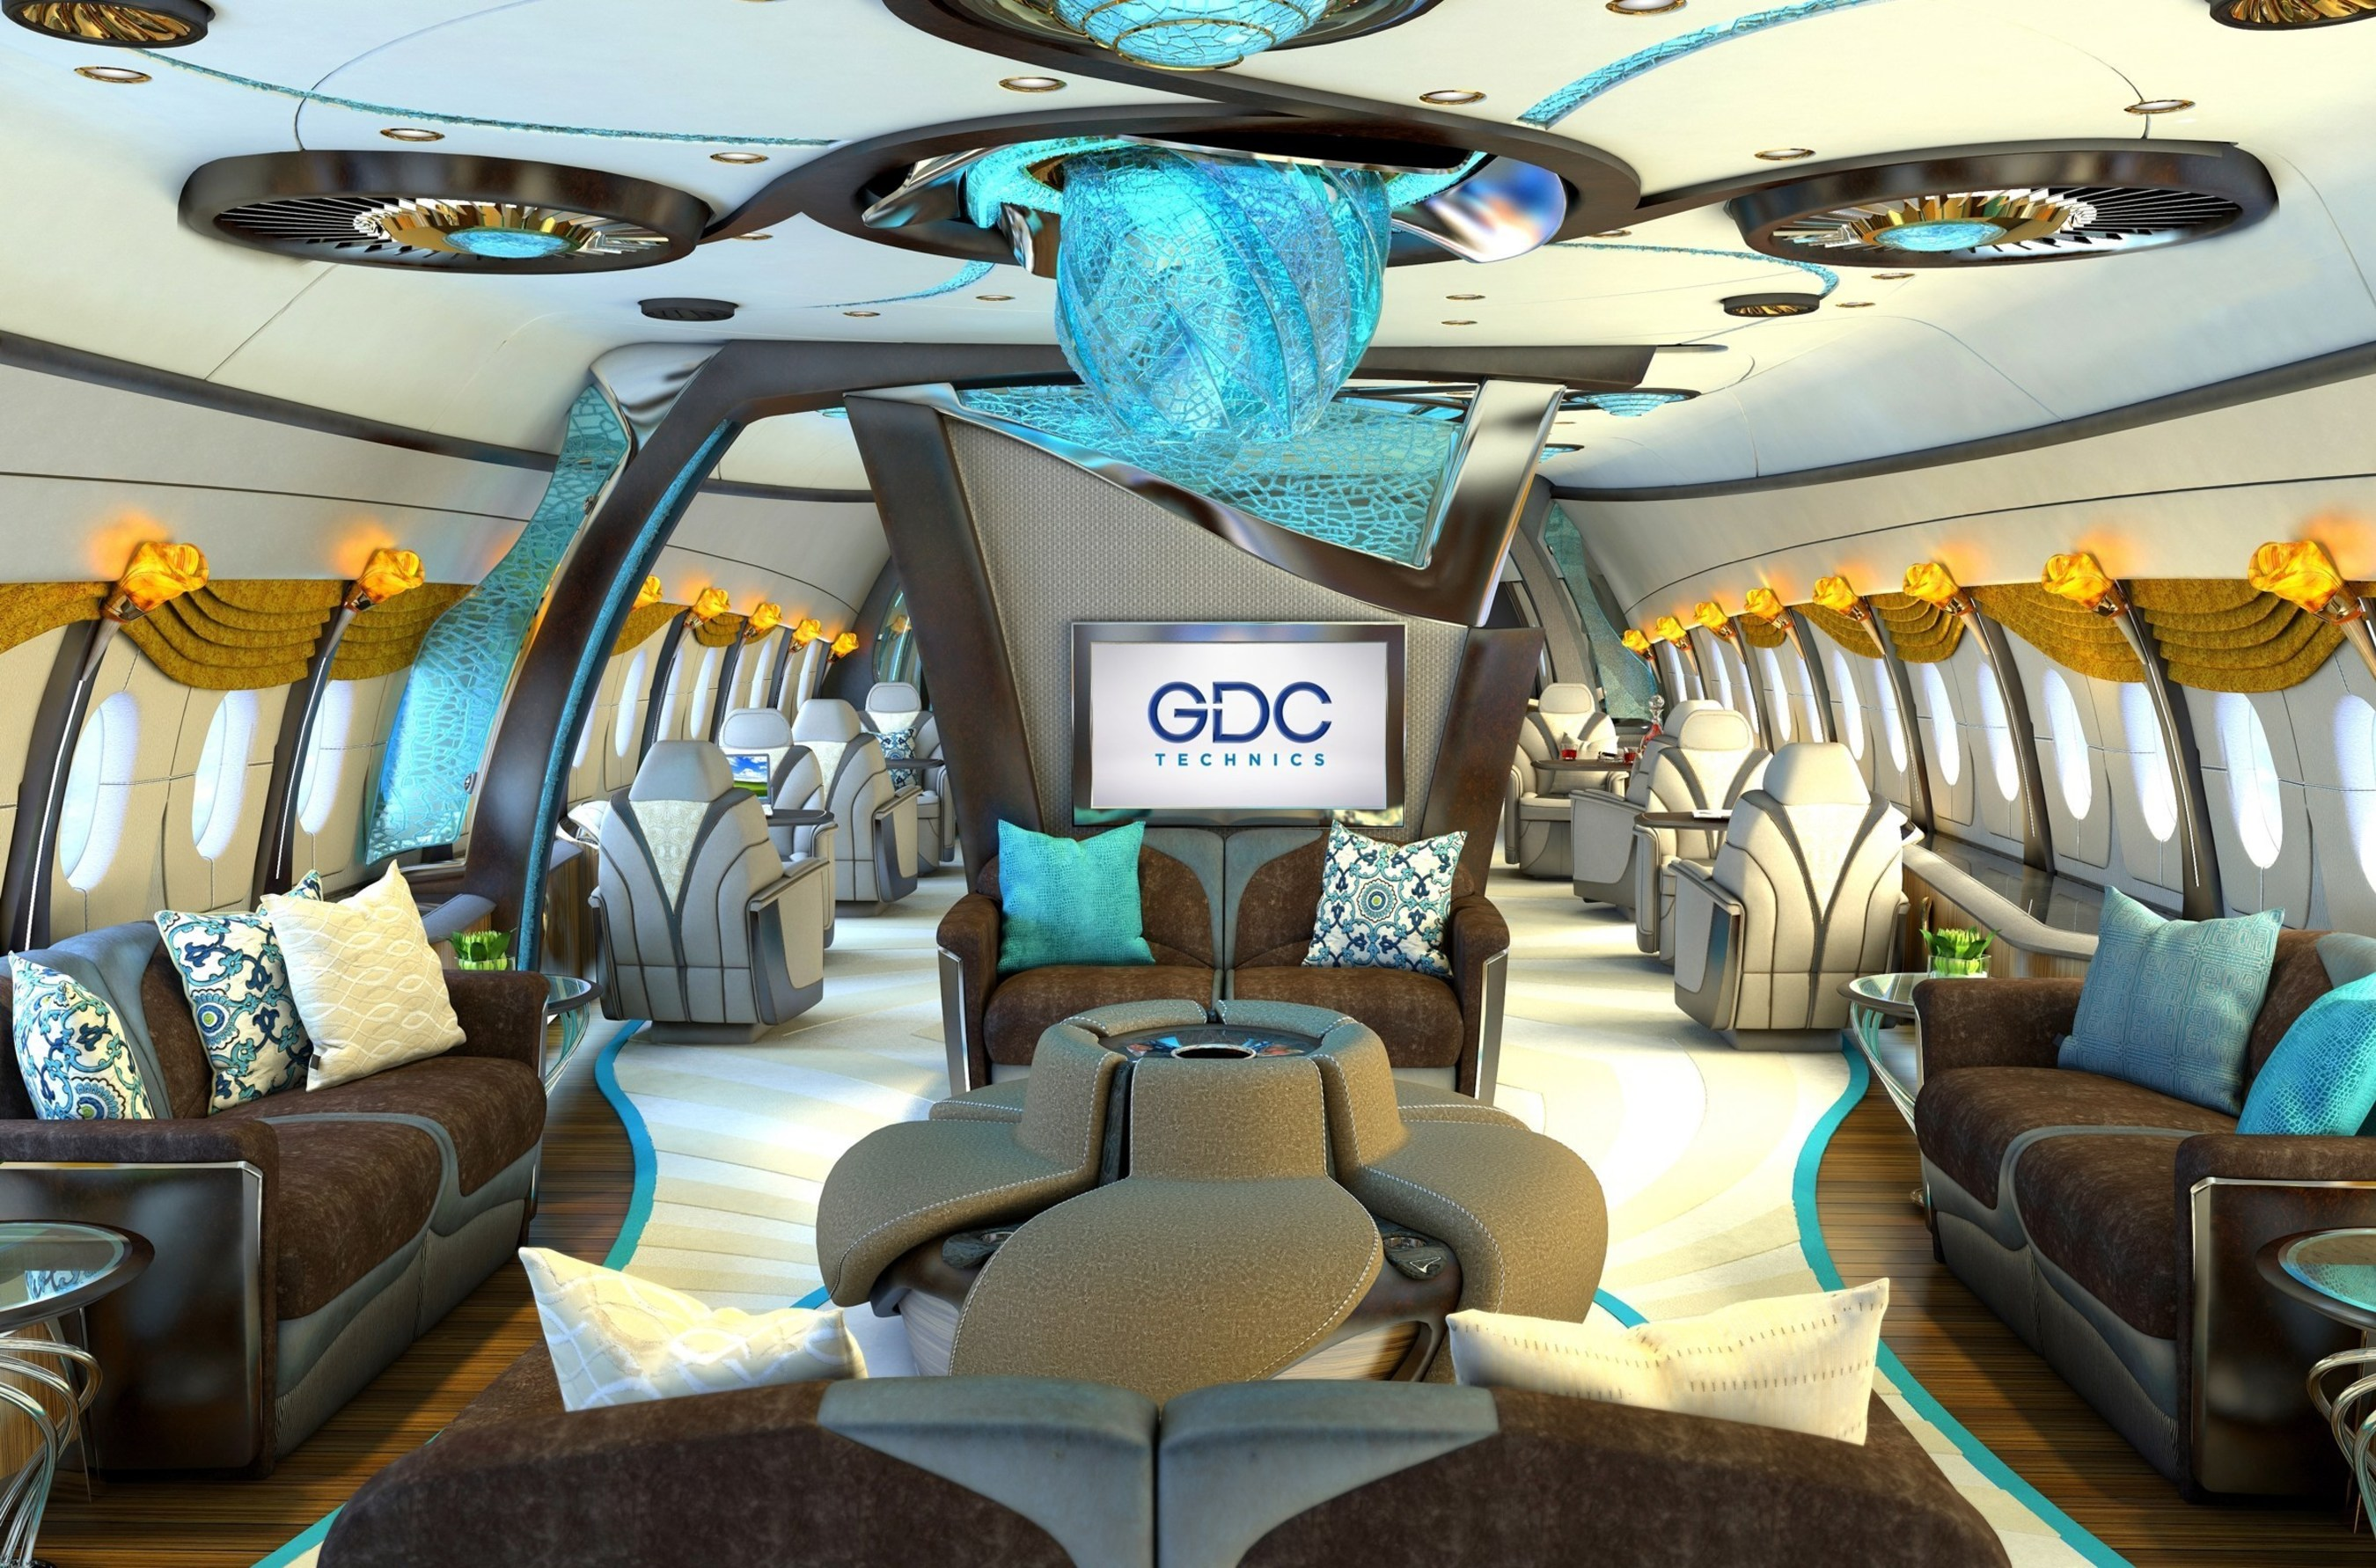 Gdc Technics Inks Lease Of 840 000 Sf At Alliance Airport